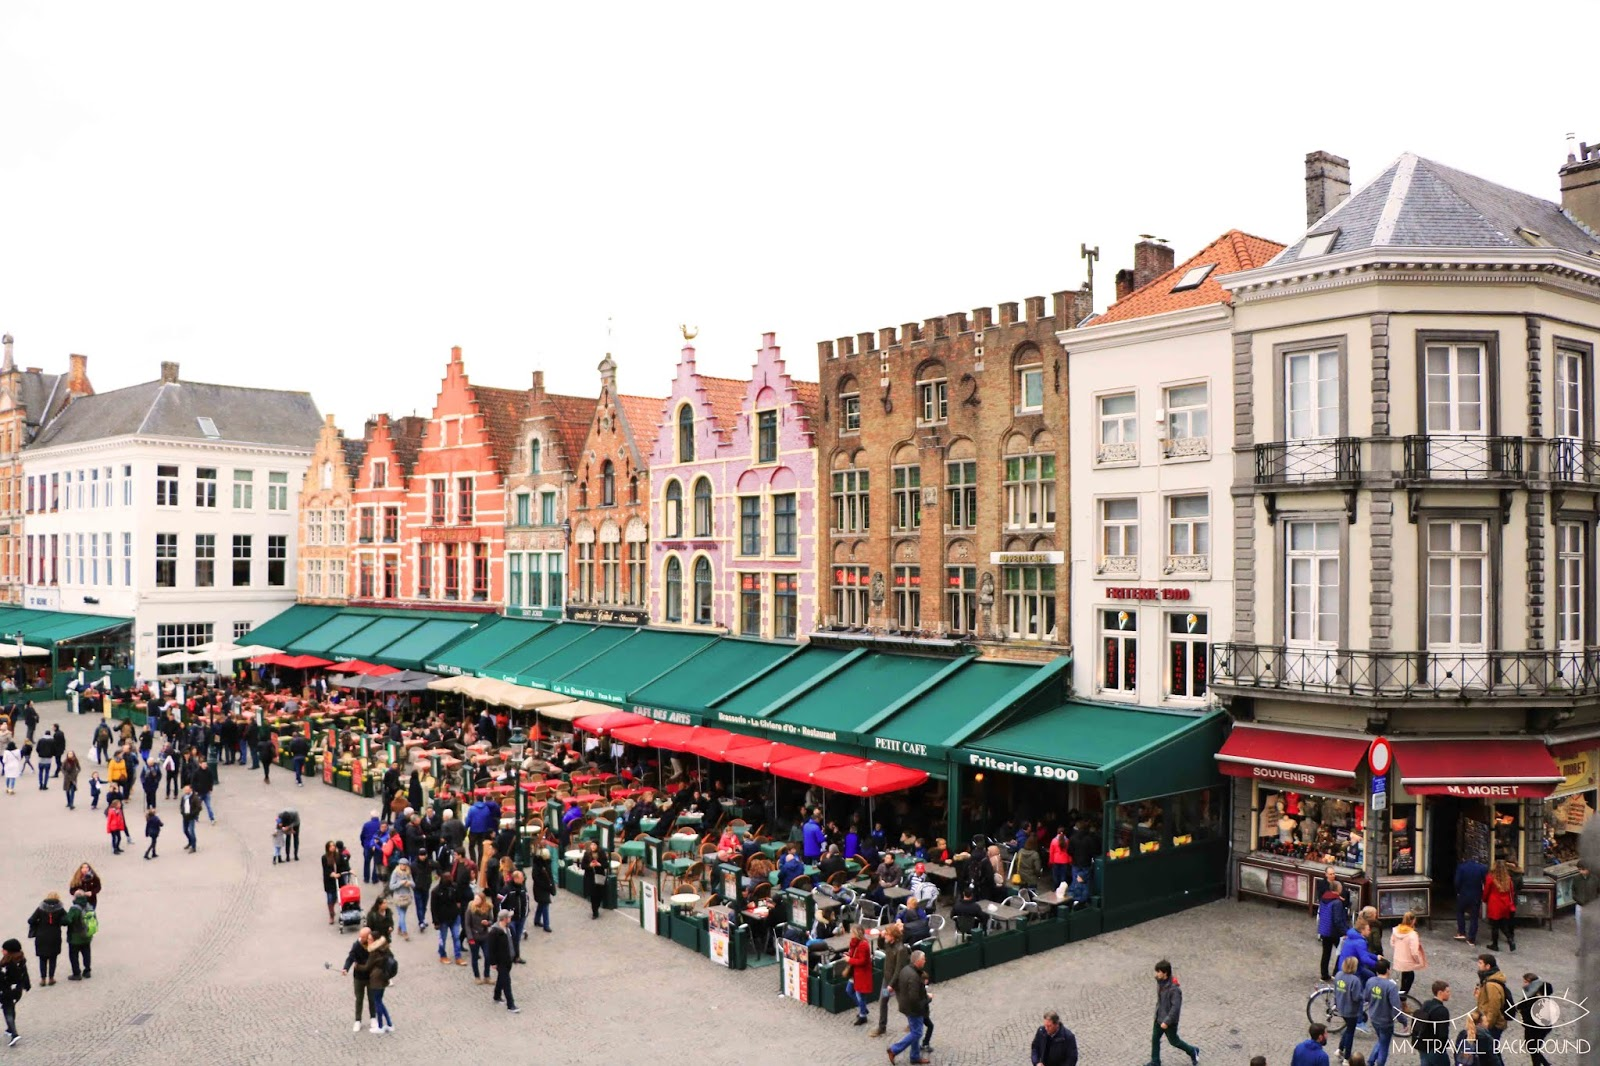 My Travel Background : Cartes Postale Belgique - Bruges et Gand